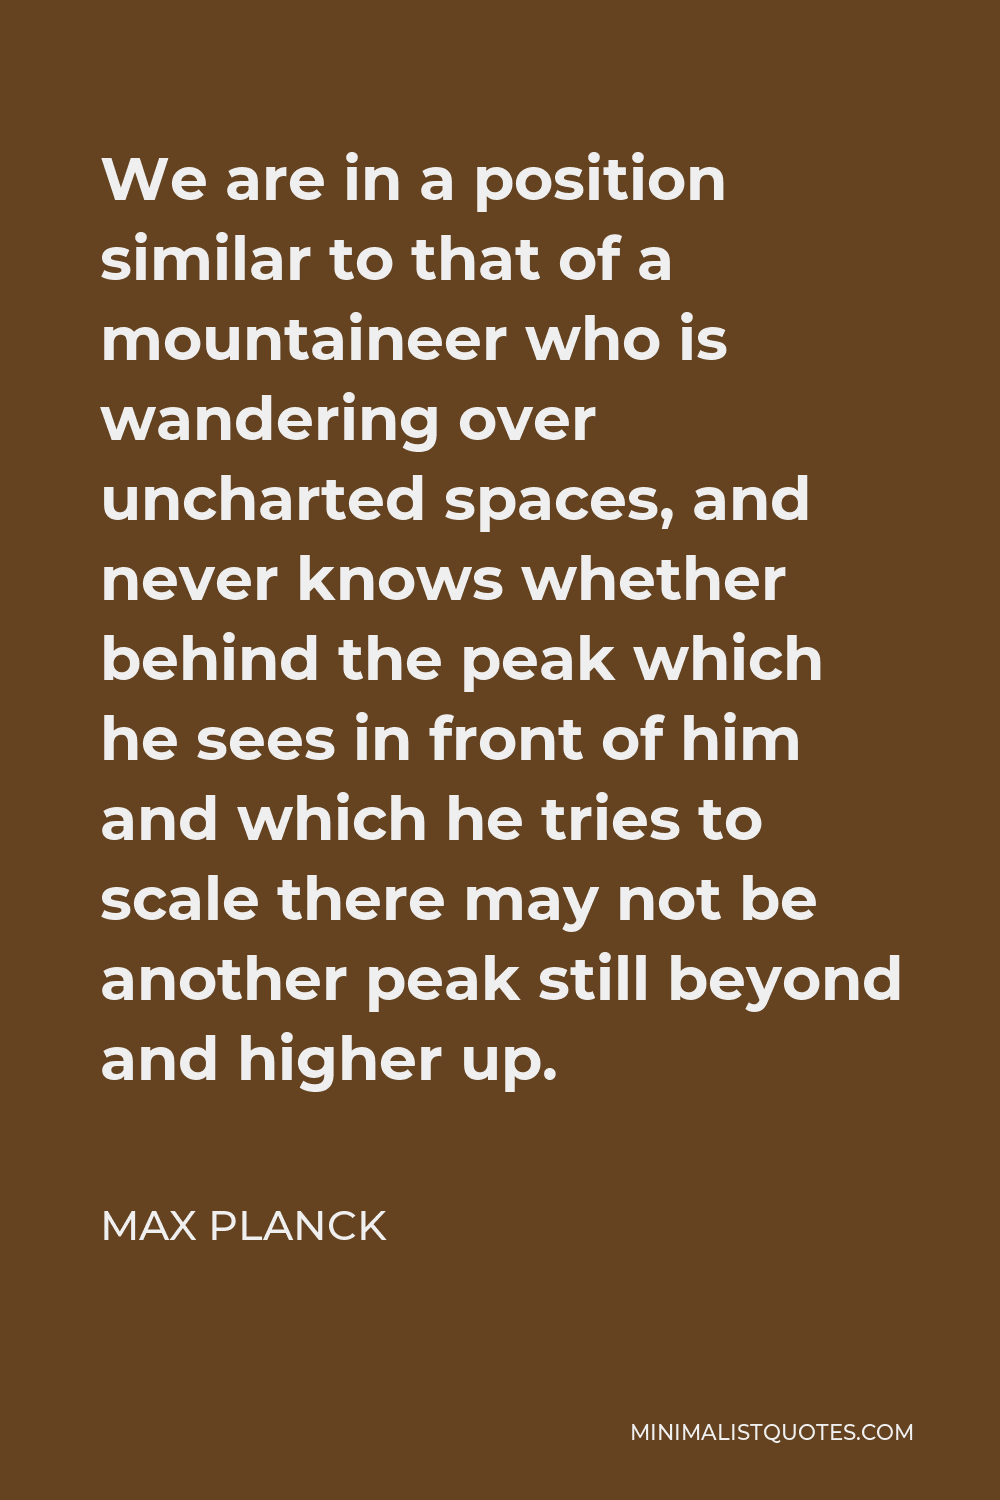 Max Planck Quote - We are in a position similar to that of a mountaineer who is wandering over uncharted spaces, and never knows whether behind the peak which he sees in front of him and which he tries to scale there may not be another peak still beyond and higher up.